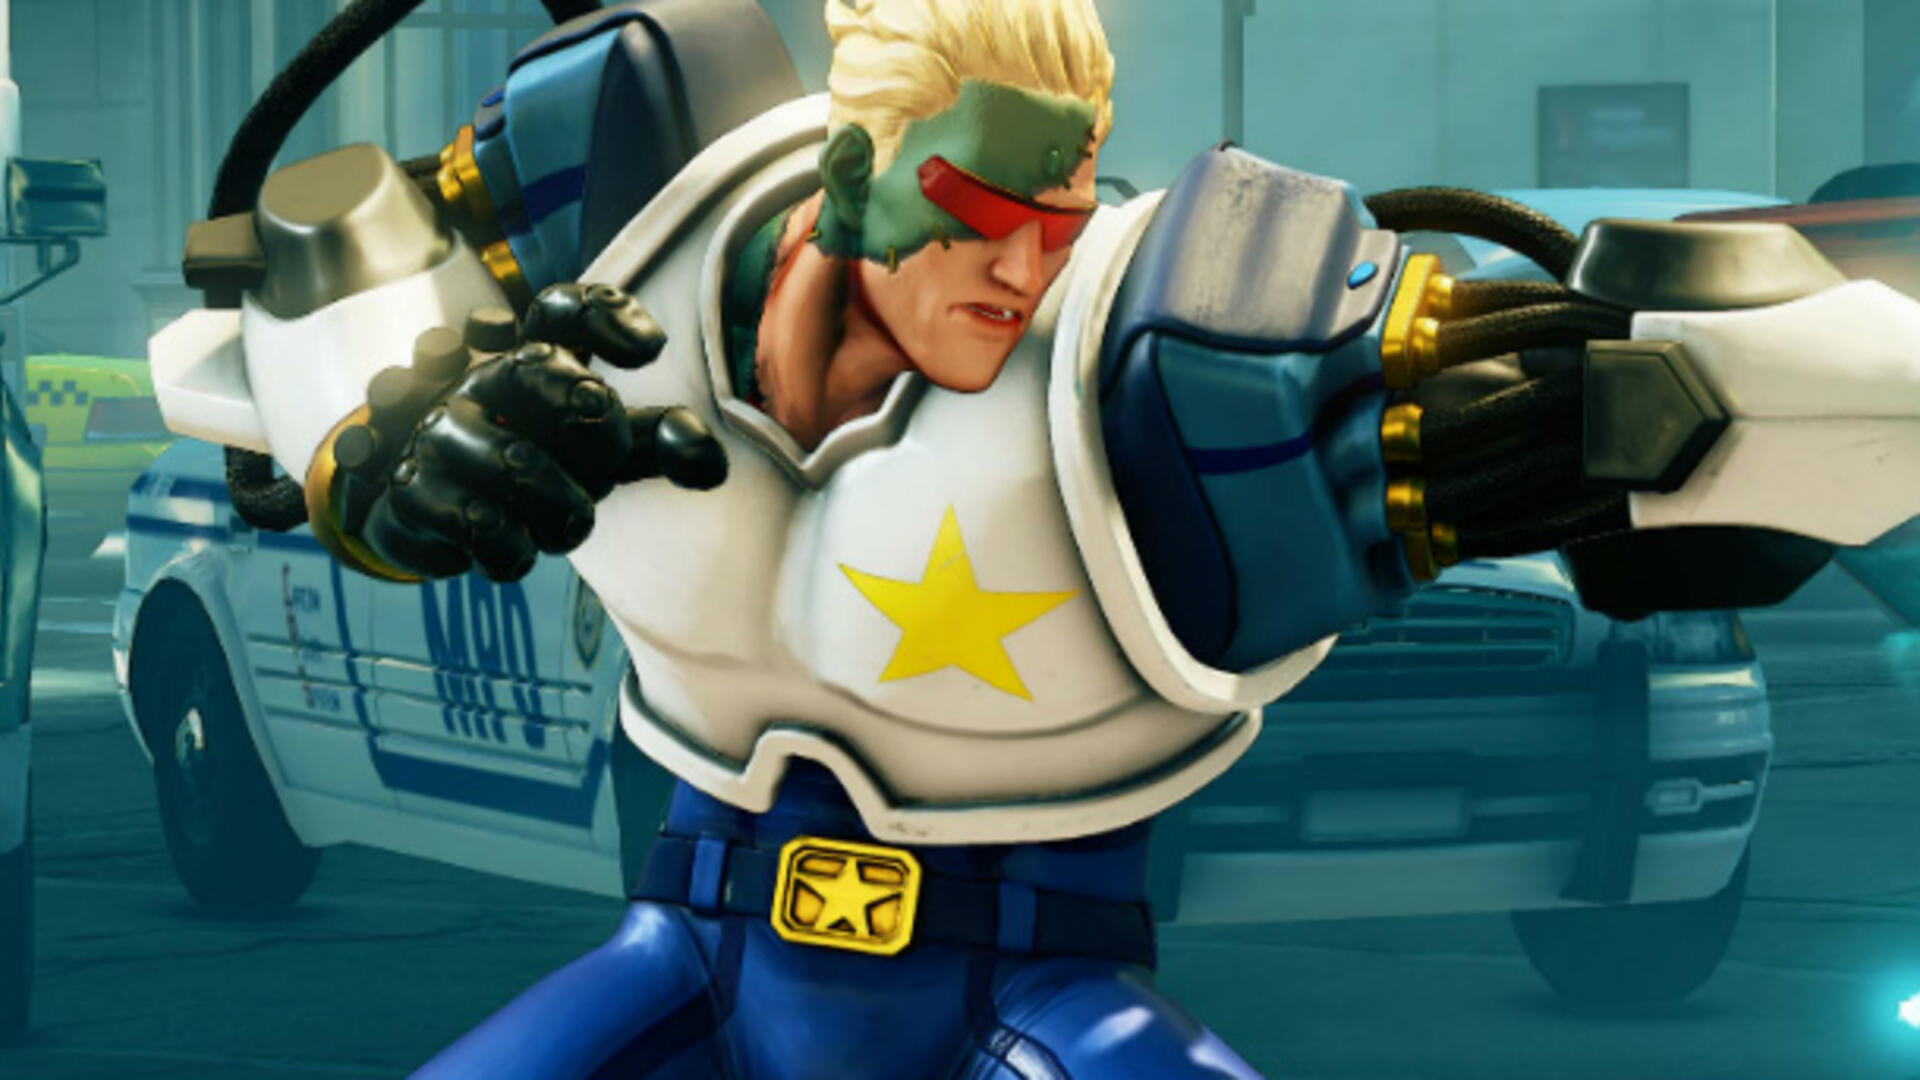 SF5: Arcade Edition's Extra Battle Offers Viewtiful Joe and Captain Commando Costumes